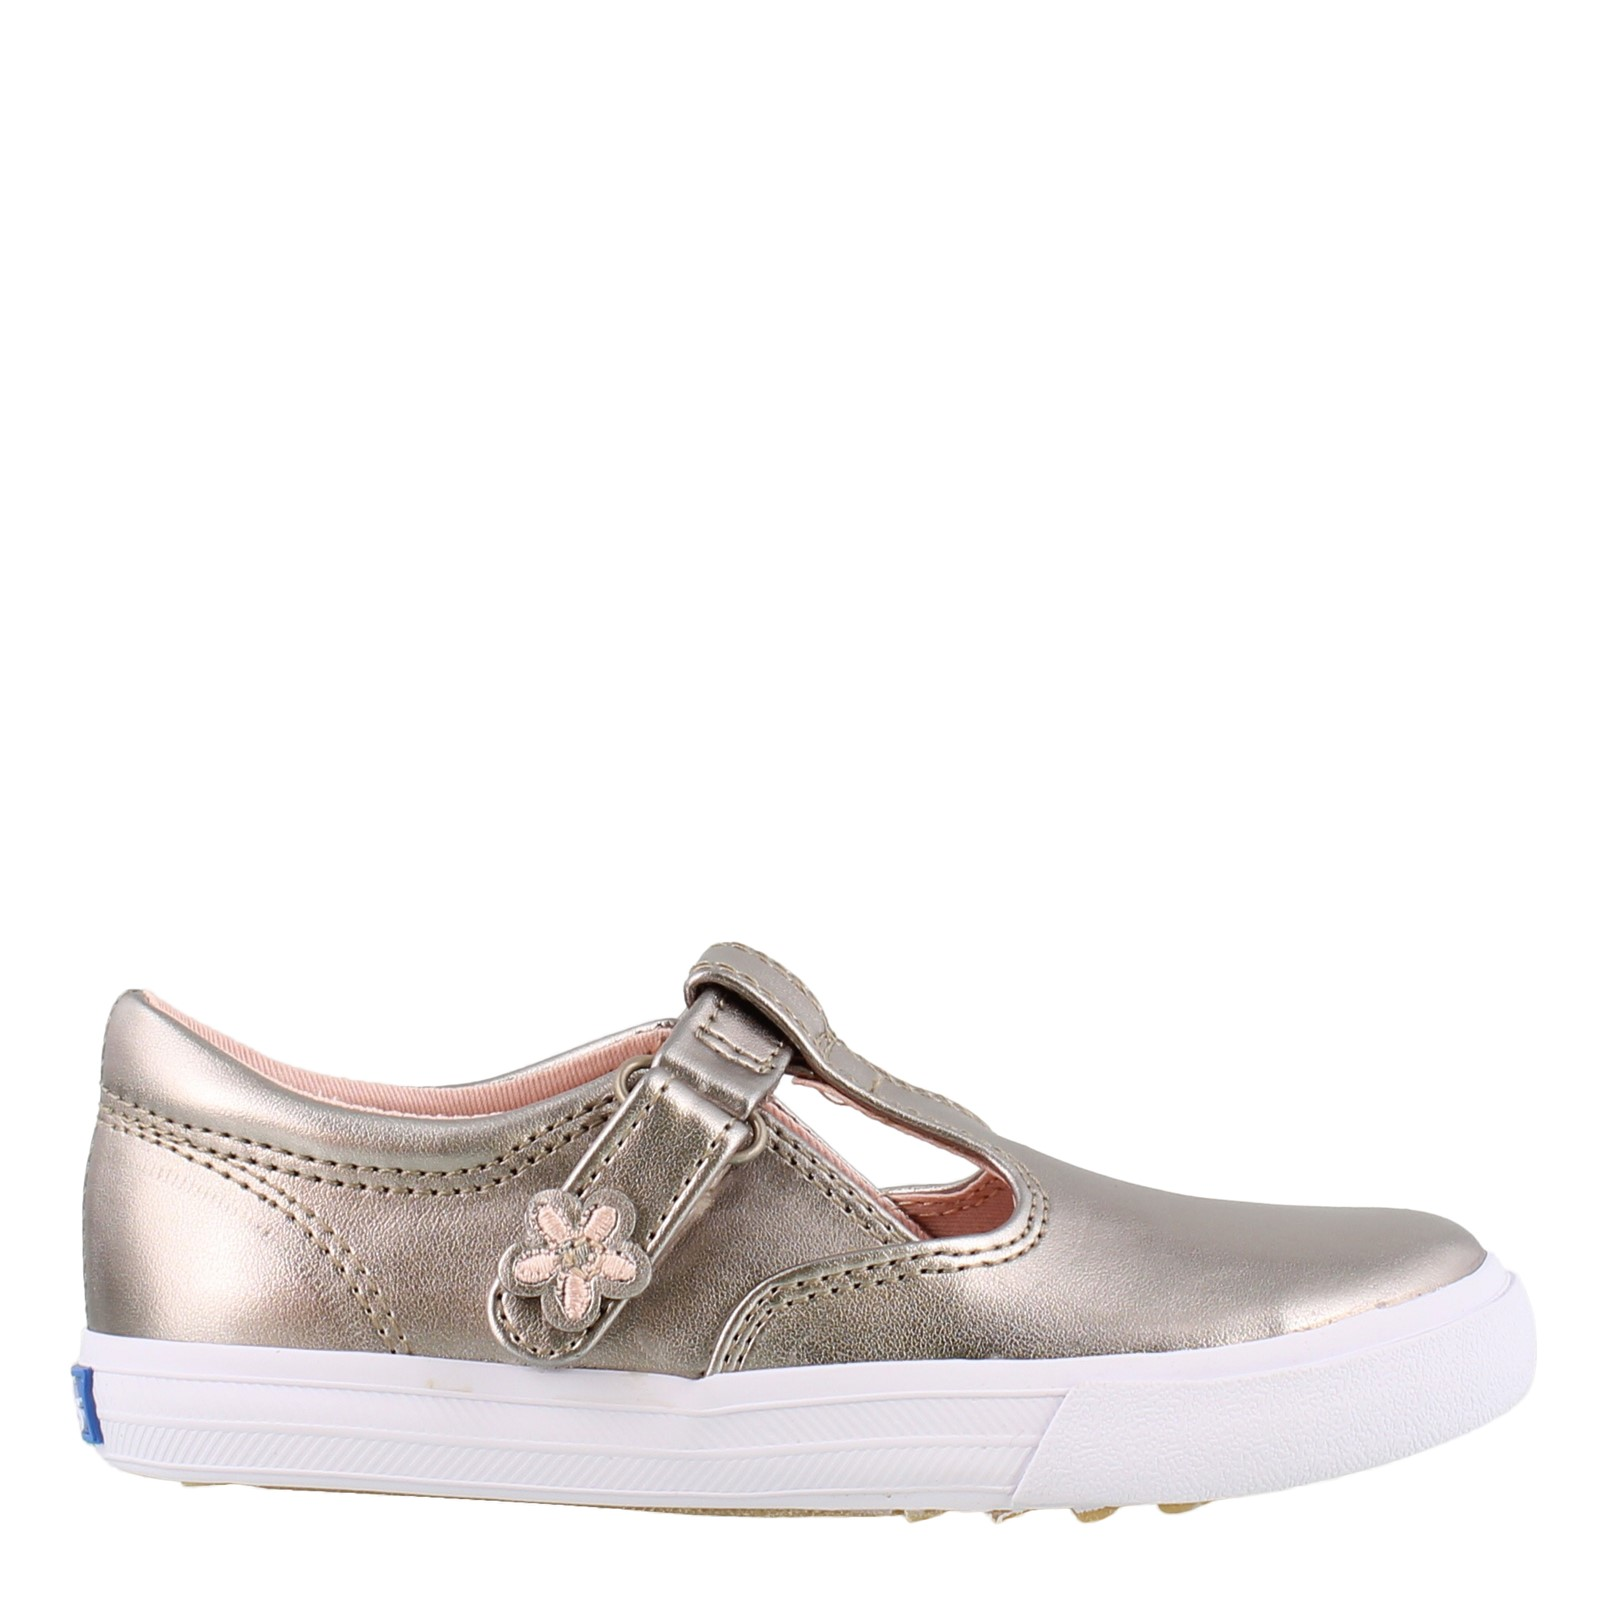 Girl's Keds, Daphne Slip on Shoes.